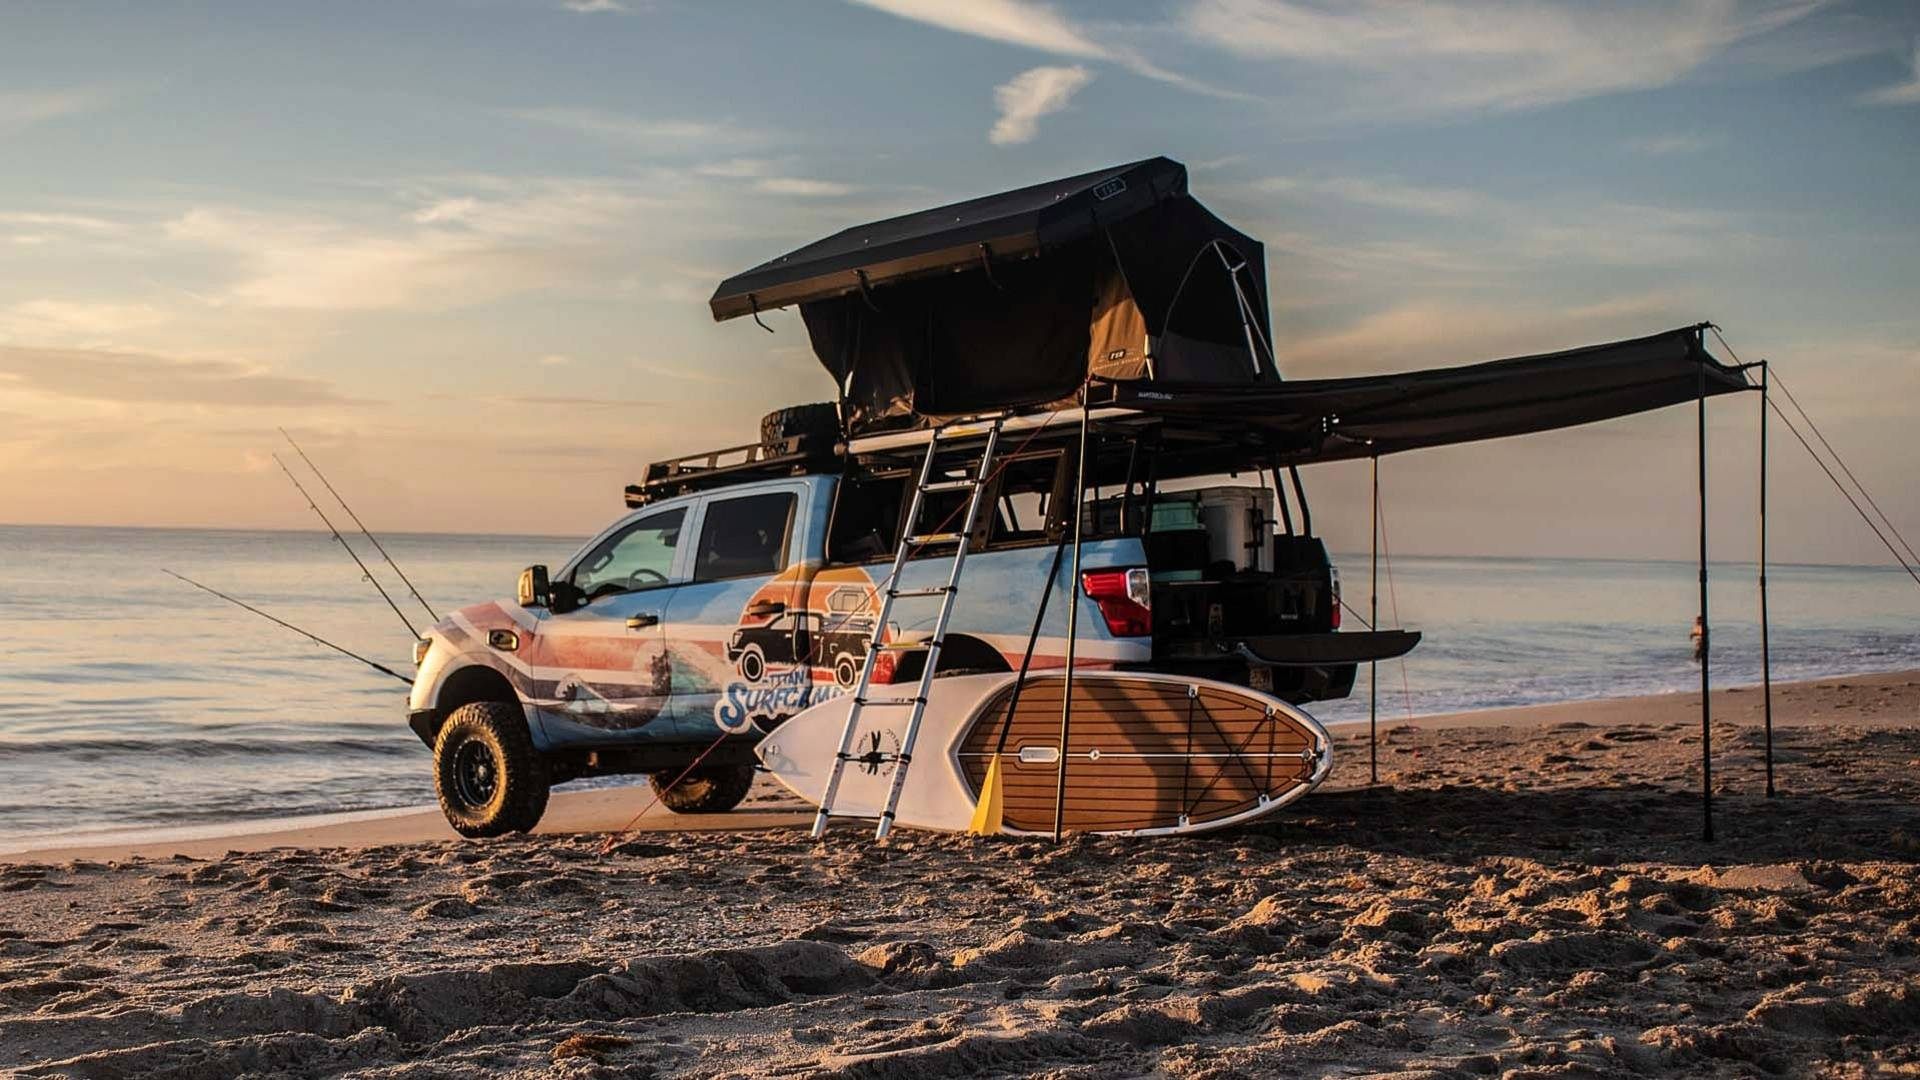 Those of us who are into fishing, rowing or just spending some nice time at a beach will appreciate the new Nissan Titan Surfcamp